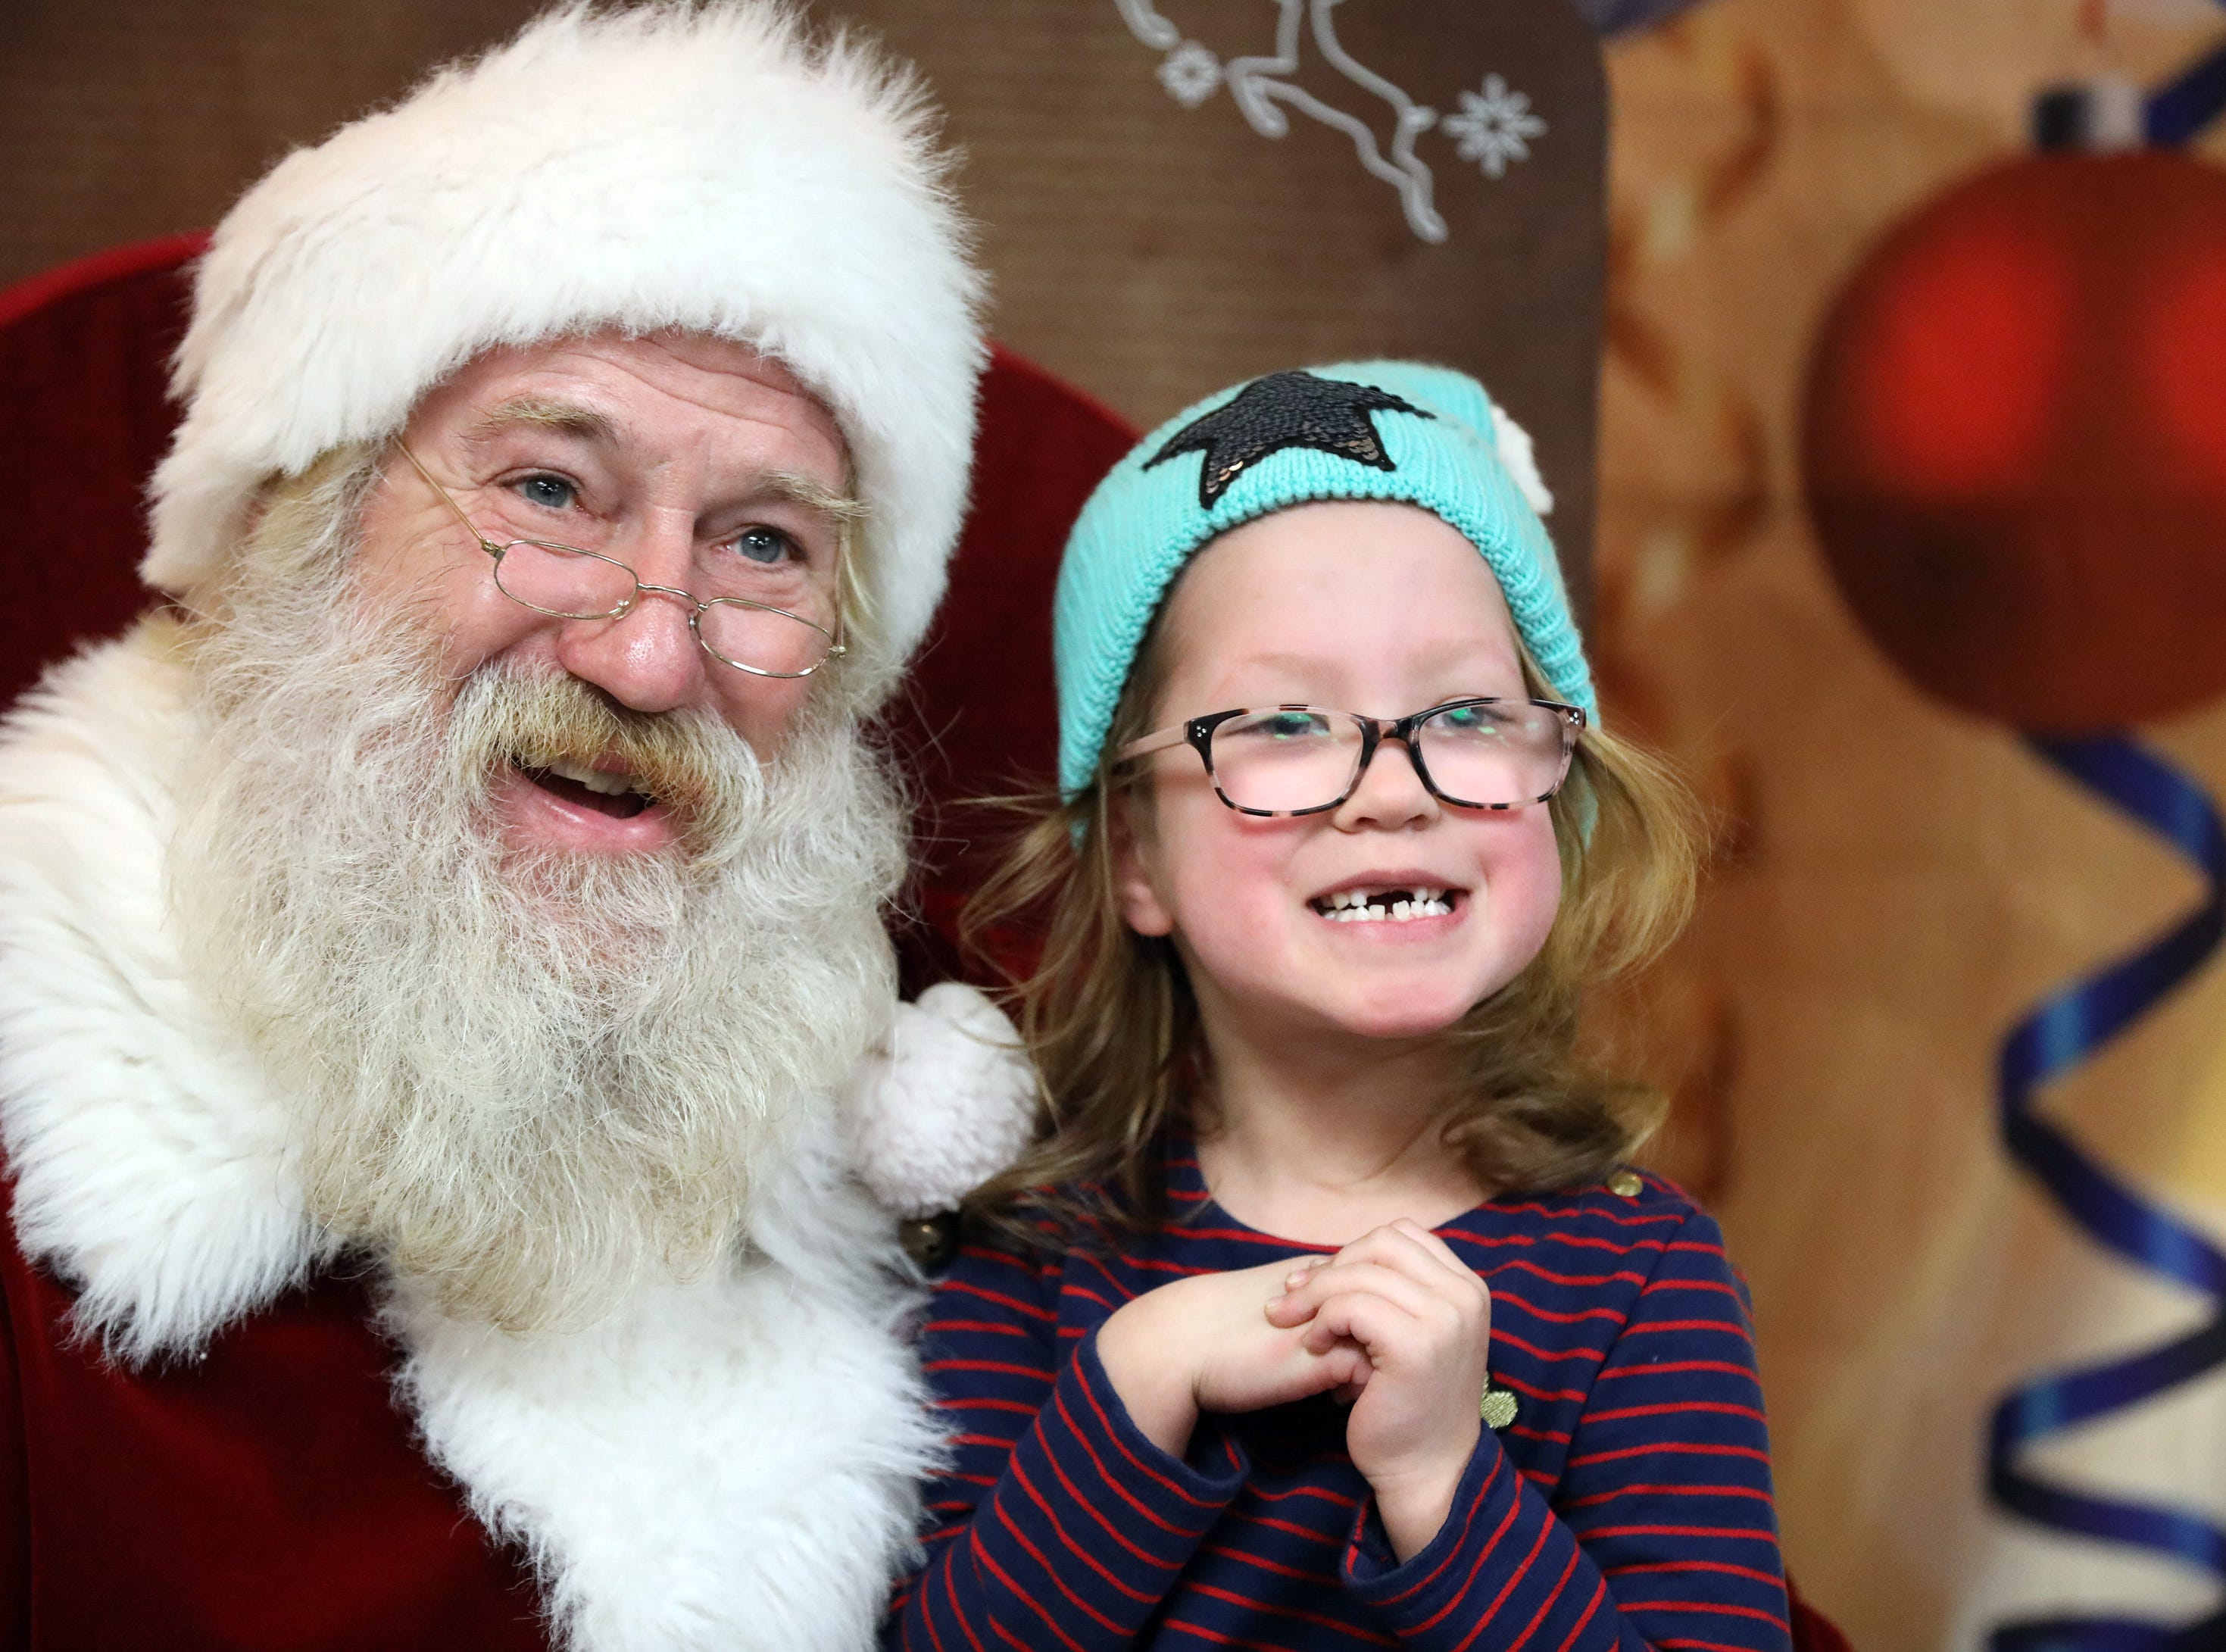 Santa and Eve Crow, 6, of Urbandale smile as Crow's parents take a picture during UCAN's  third annual Light Up Urbandale on Sunday, Dec. 2, 2018 at Lions Park in Urbandale. Holiday festivities included a visit from Santa, crafts, goodies, official tree lighting ceremony, live reindeer and entertainment.